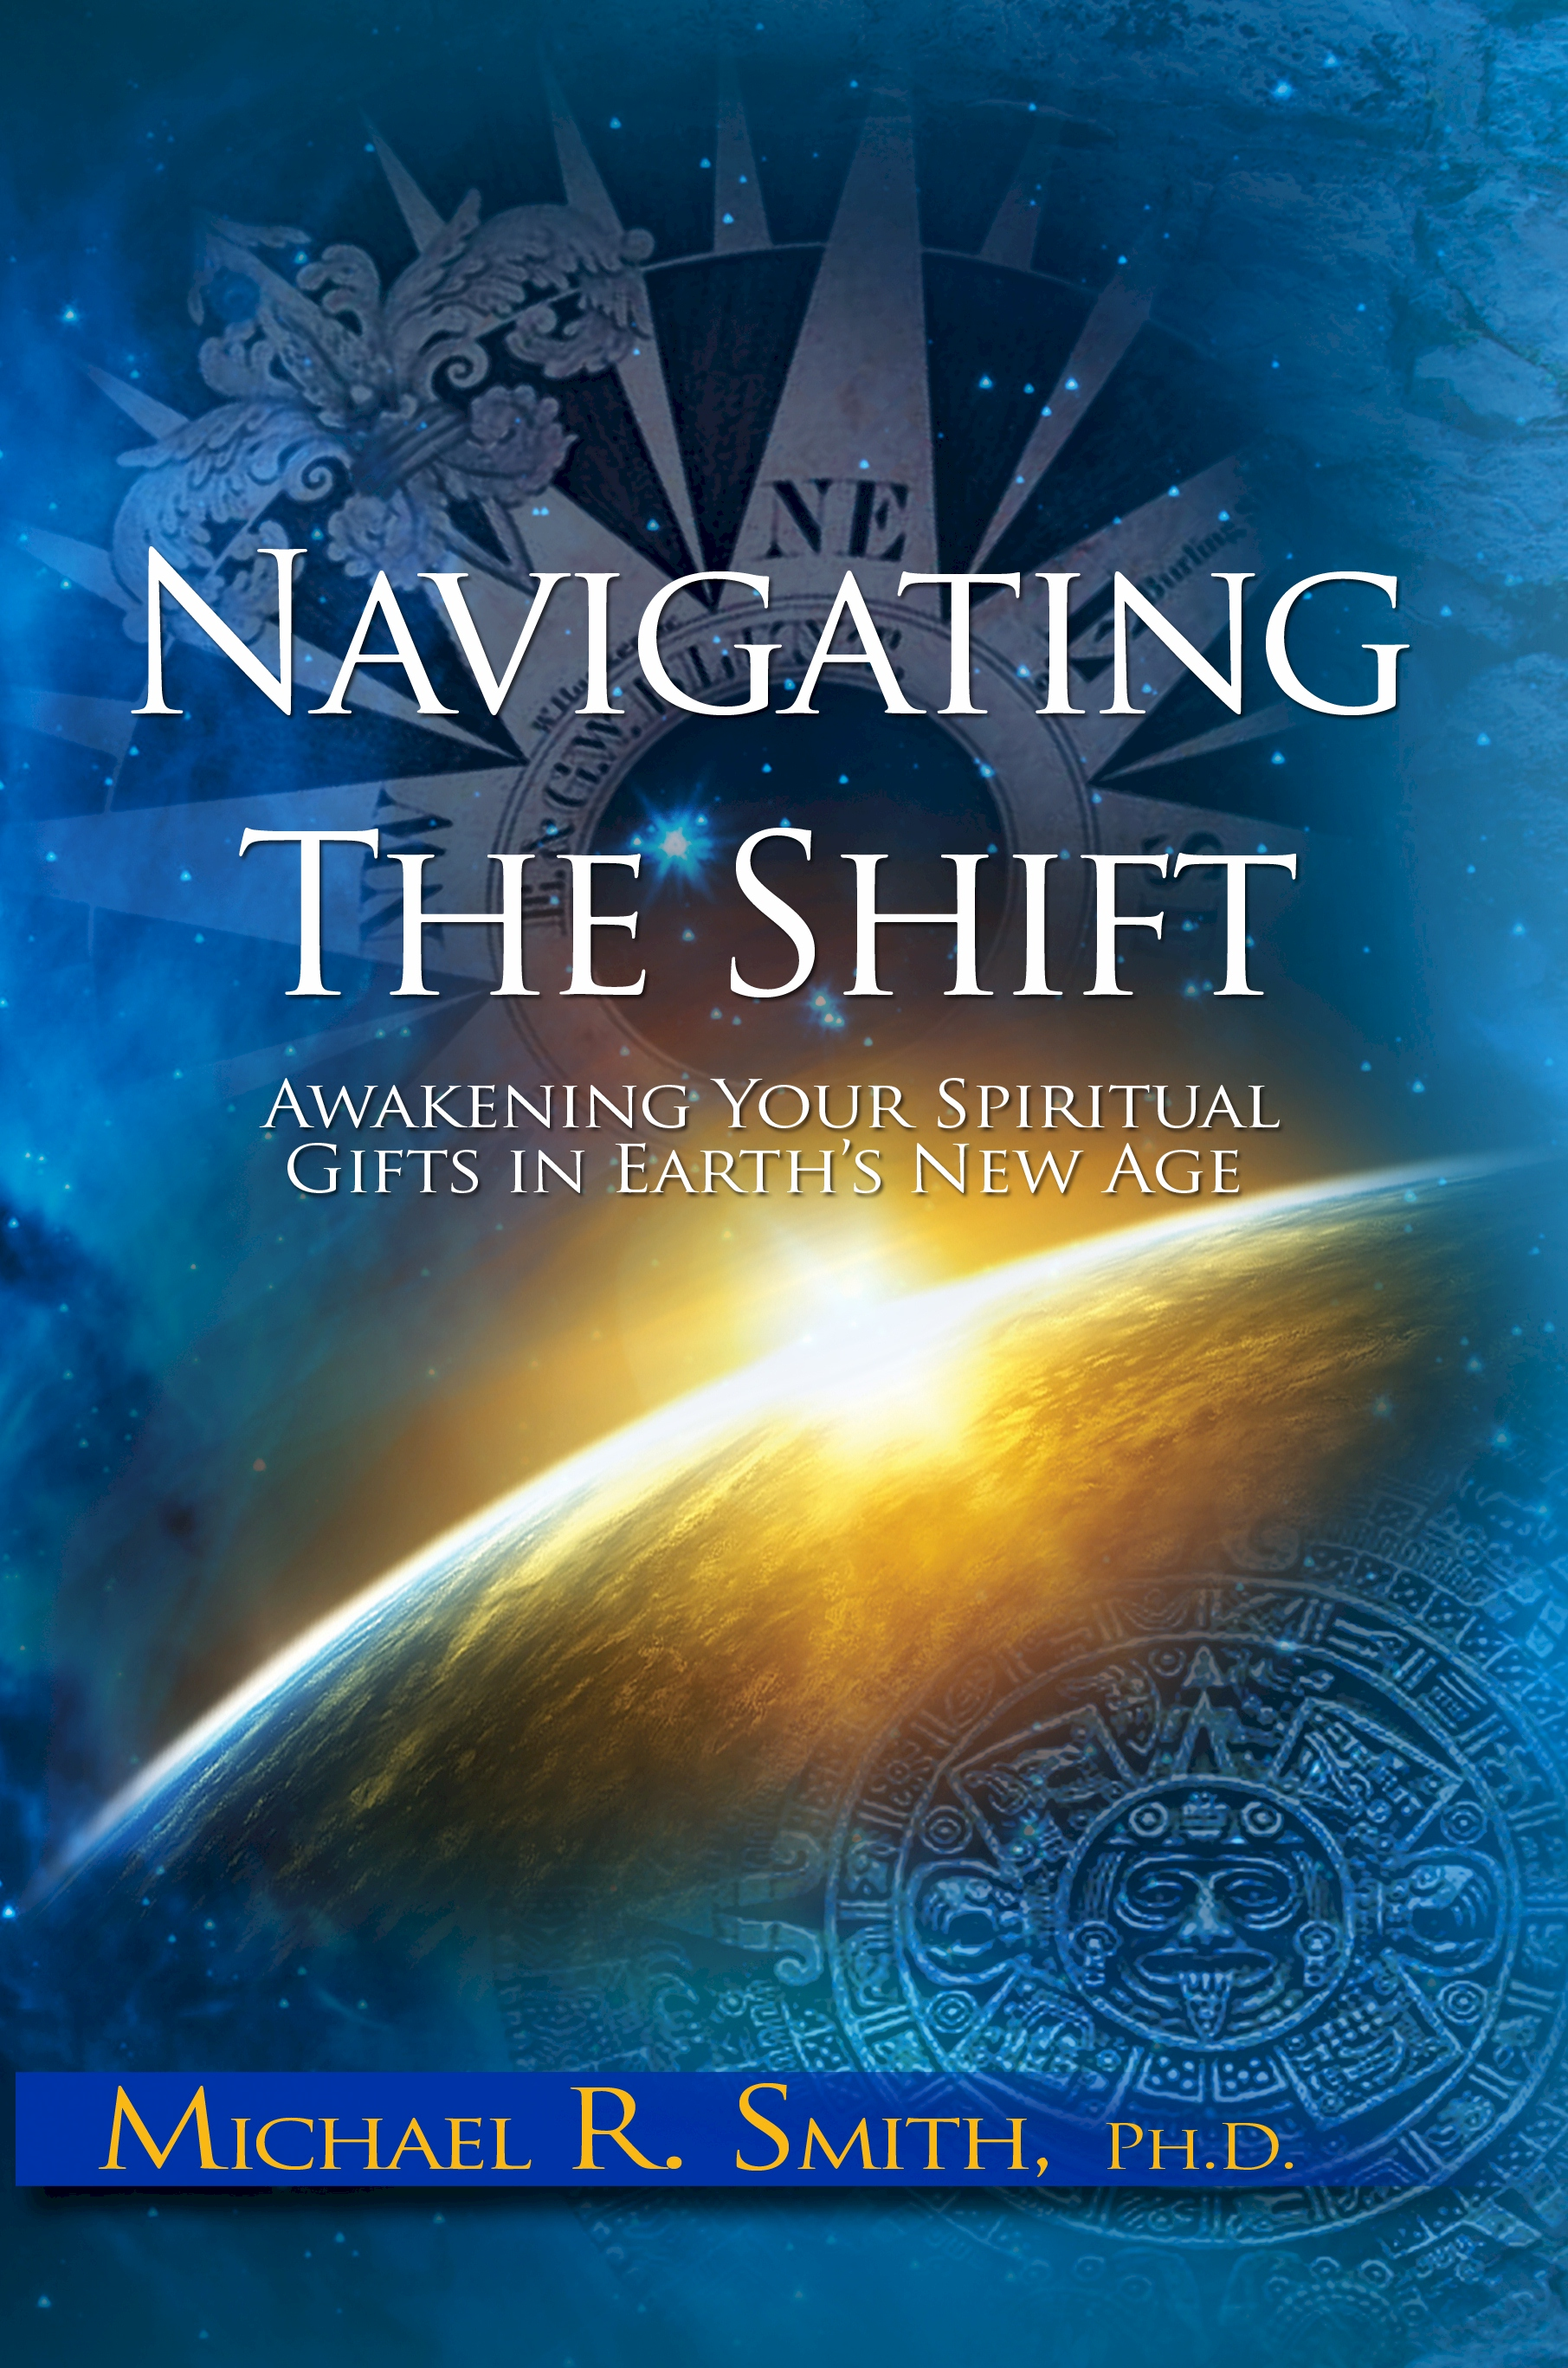 Navigating The Shift: Awakening Your Spiritual Gifts in Earth's New Age